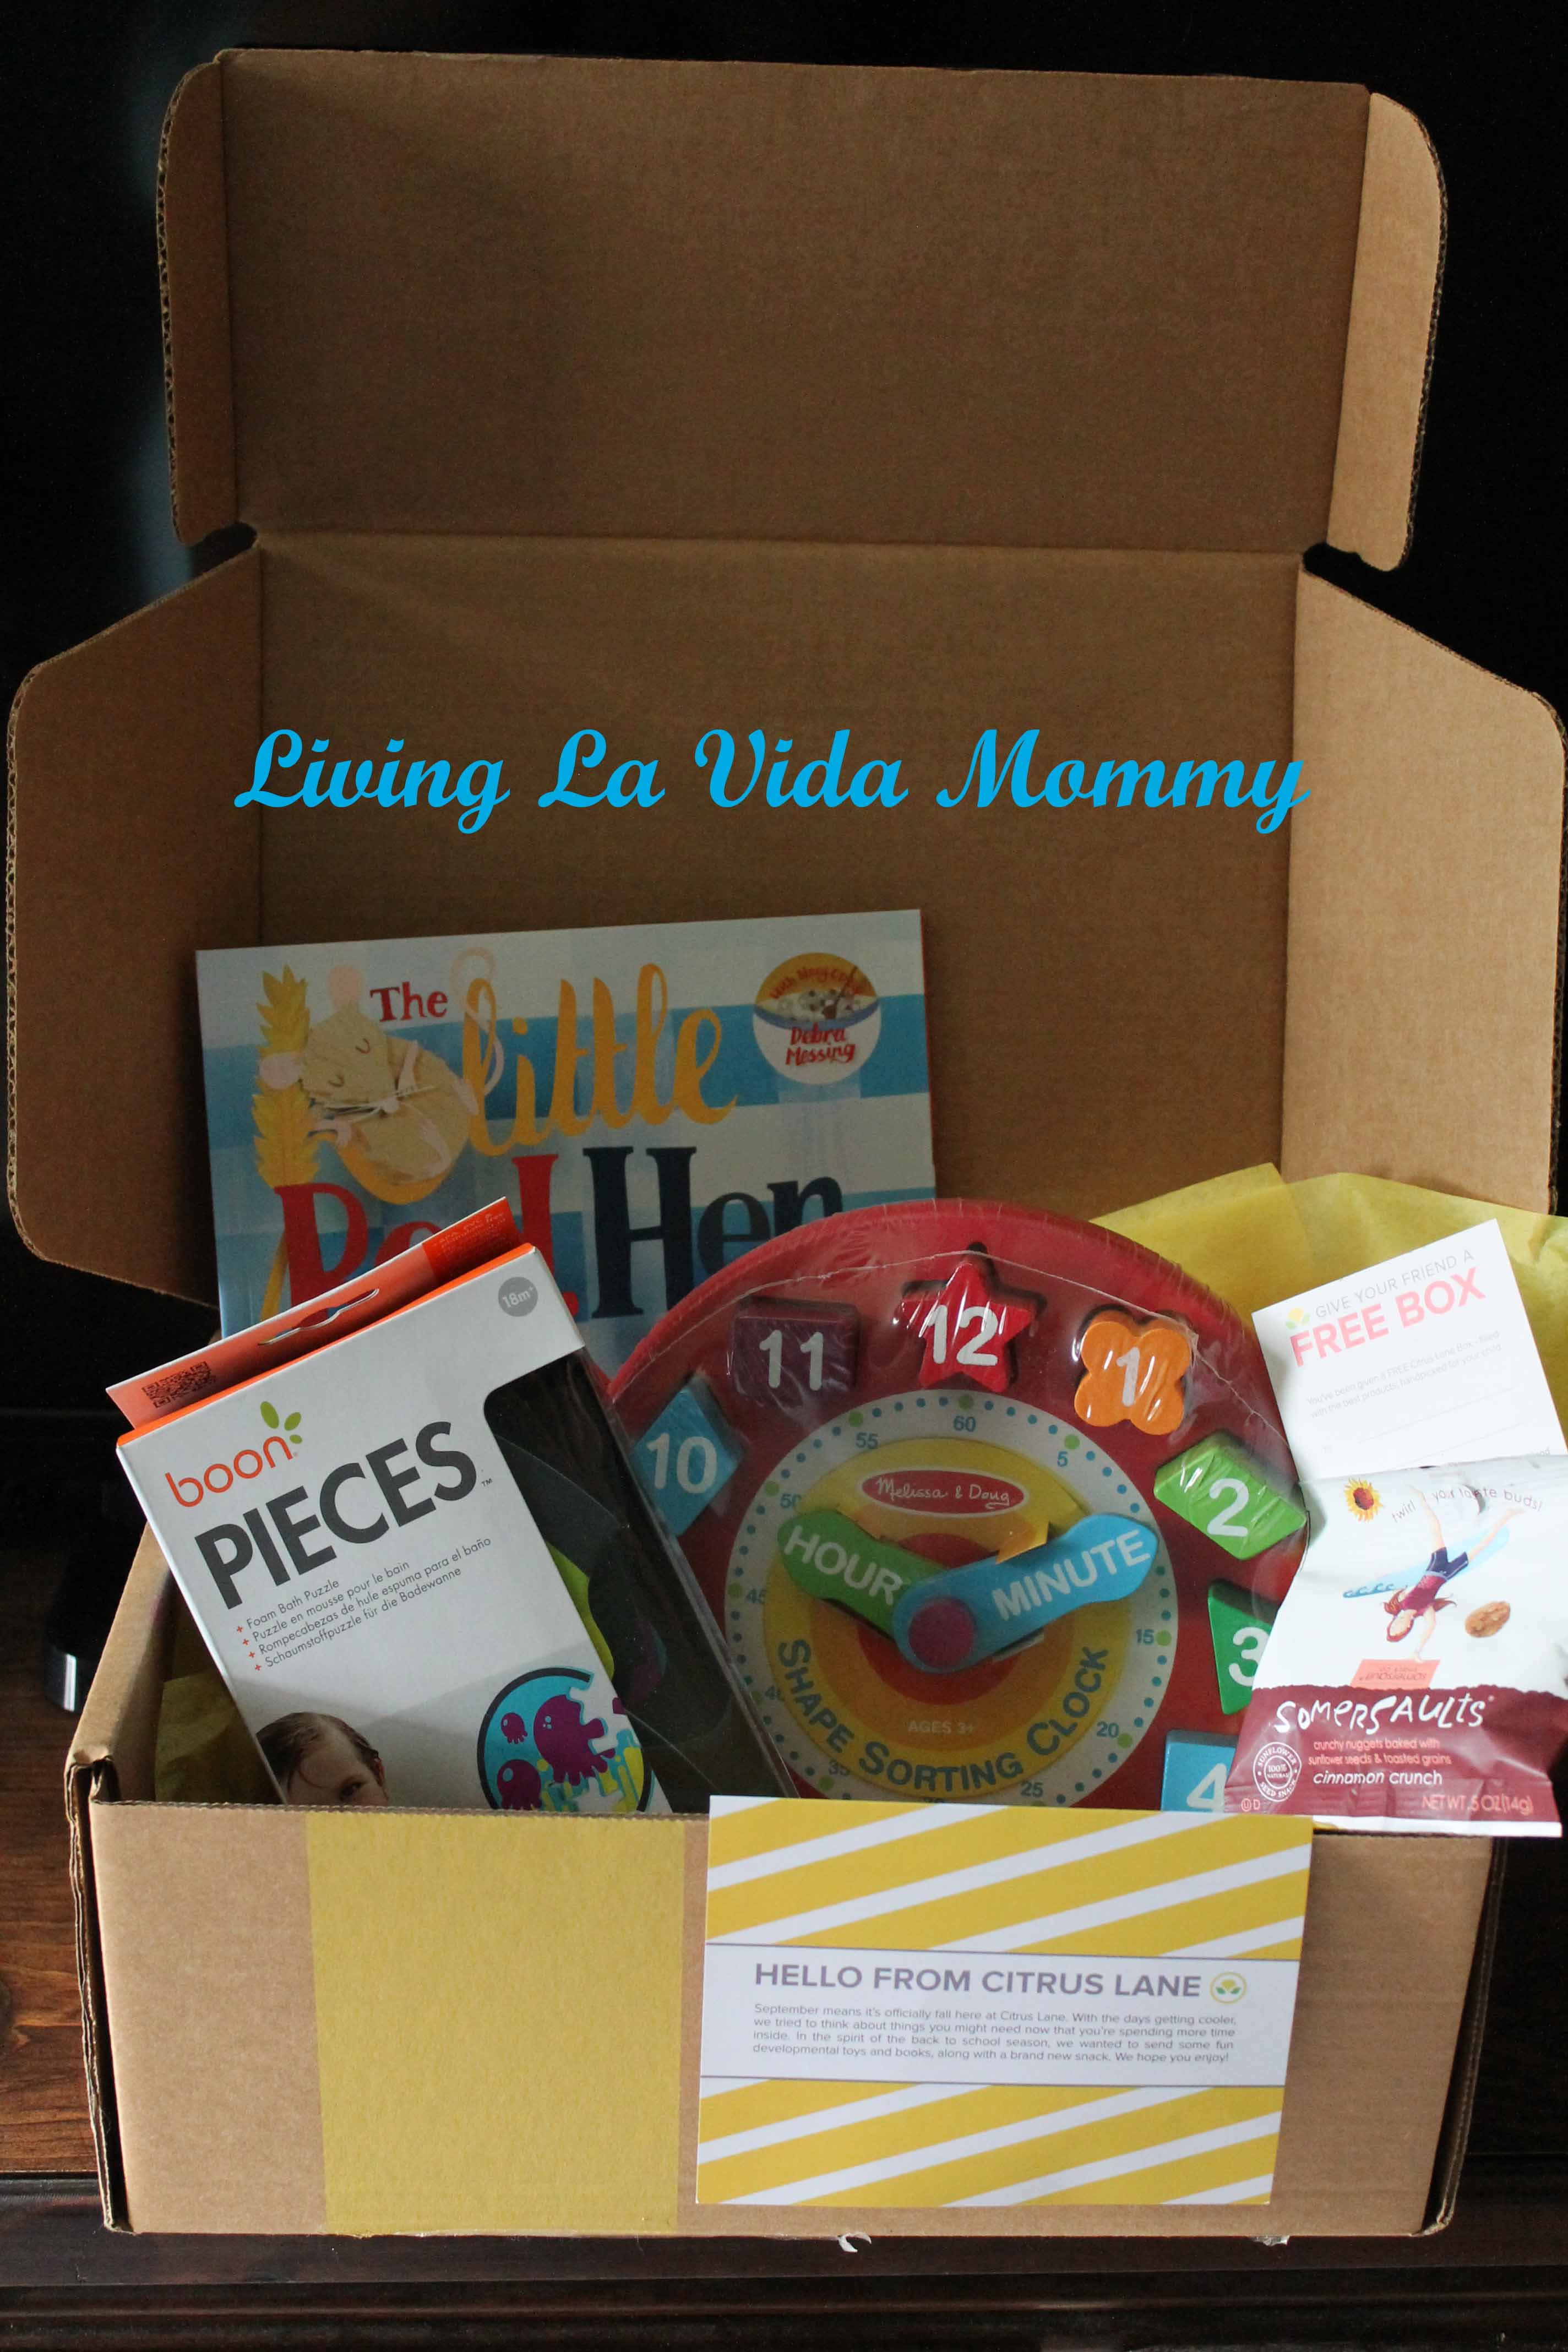 Citrus Lane | Living La Vida Mommy